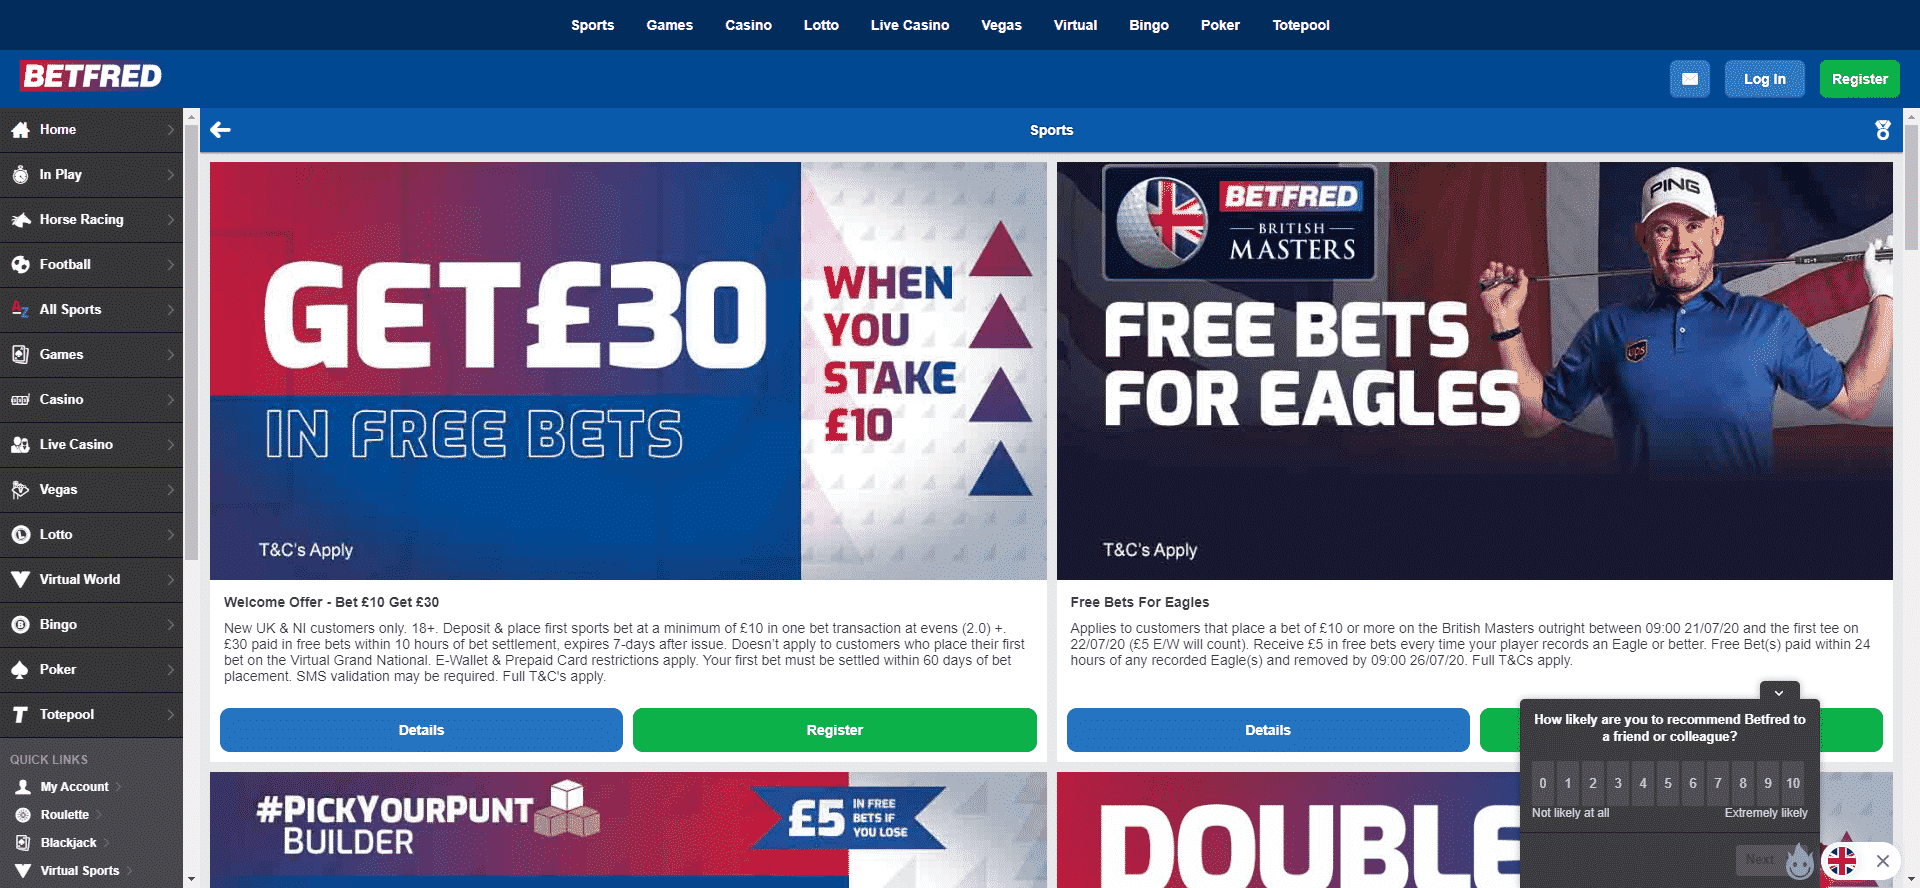 Us masters betting betfred results australia sports betting